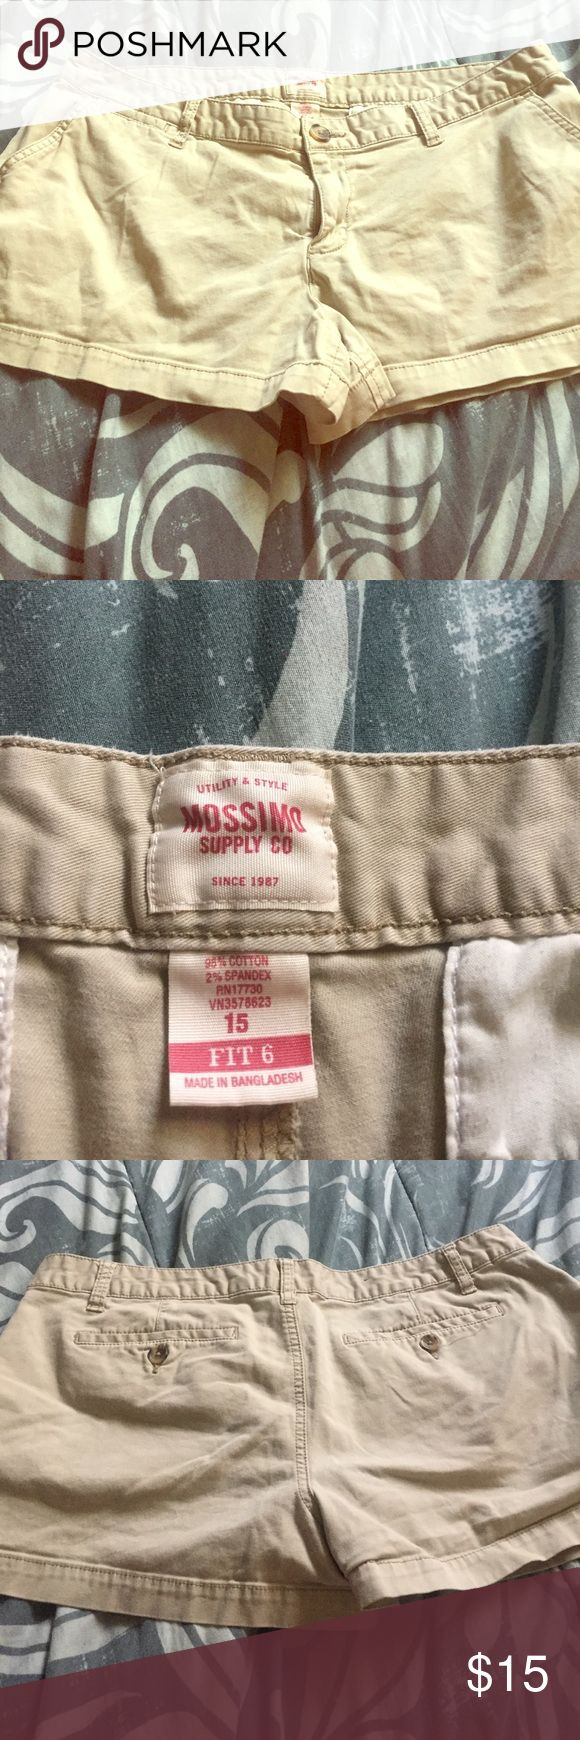 Mossimo Khaki shorts size 15.  (6?) Khaki pair of Mossimo shorts size 15, BUT the tag says FIT 6, I have no idea what that means, so if anyone does, please let me know. I know I wear between a 7-9,& they fall off me literally. Mossimo Supply Co Shorts